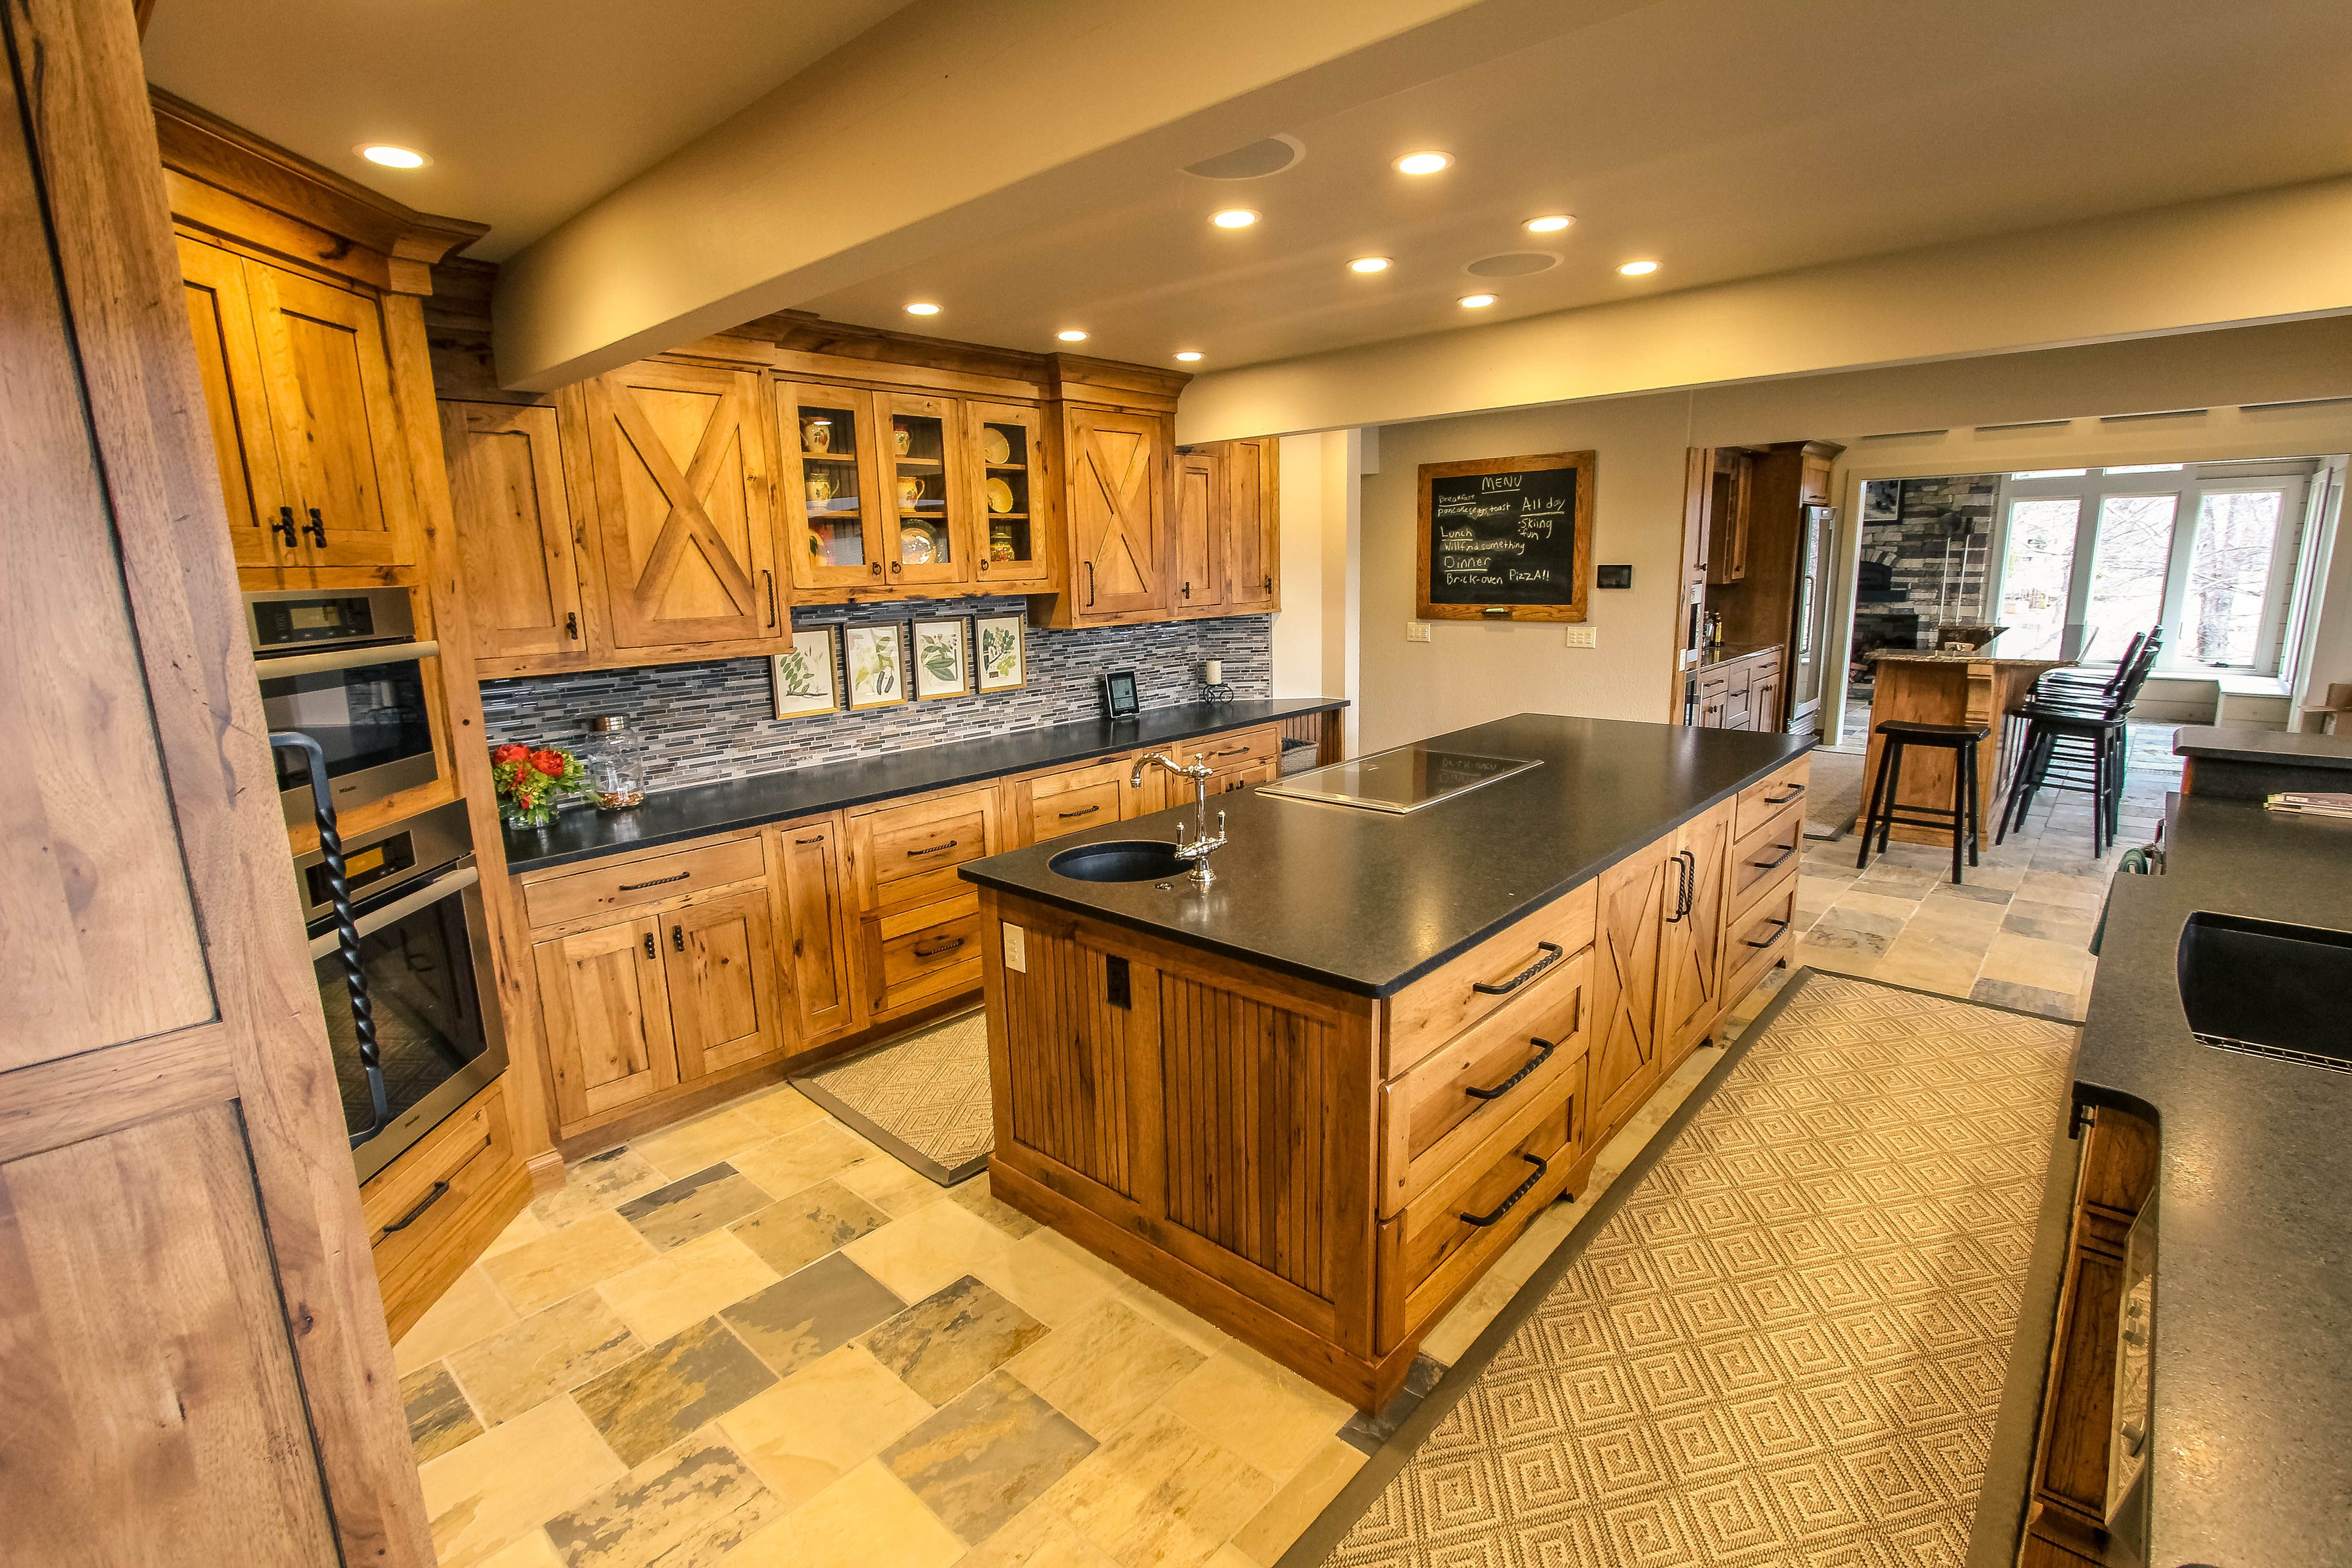 Black Granite Countertops Perfectly Compliment This Rustic Kitchen In D Granite Countertops Kitchen Black Granite Countertops Black Granite Countertops Kitchen